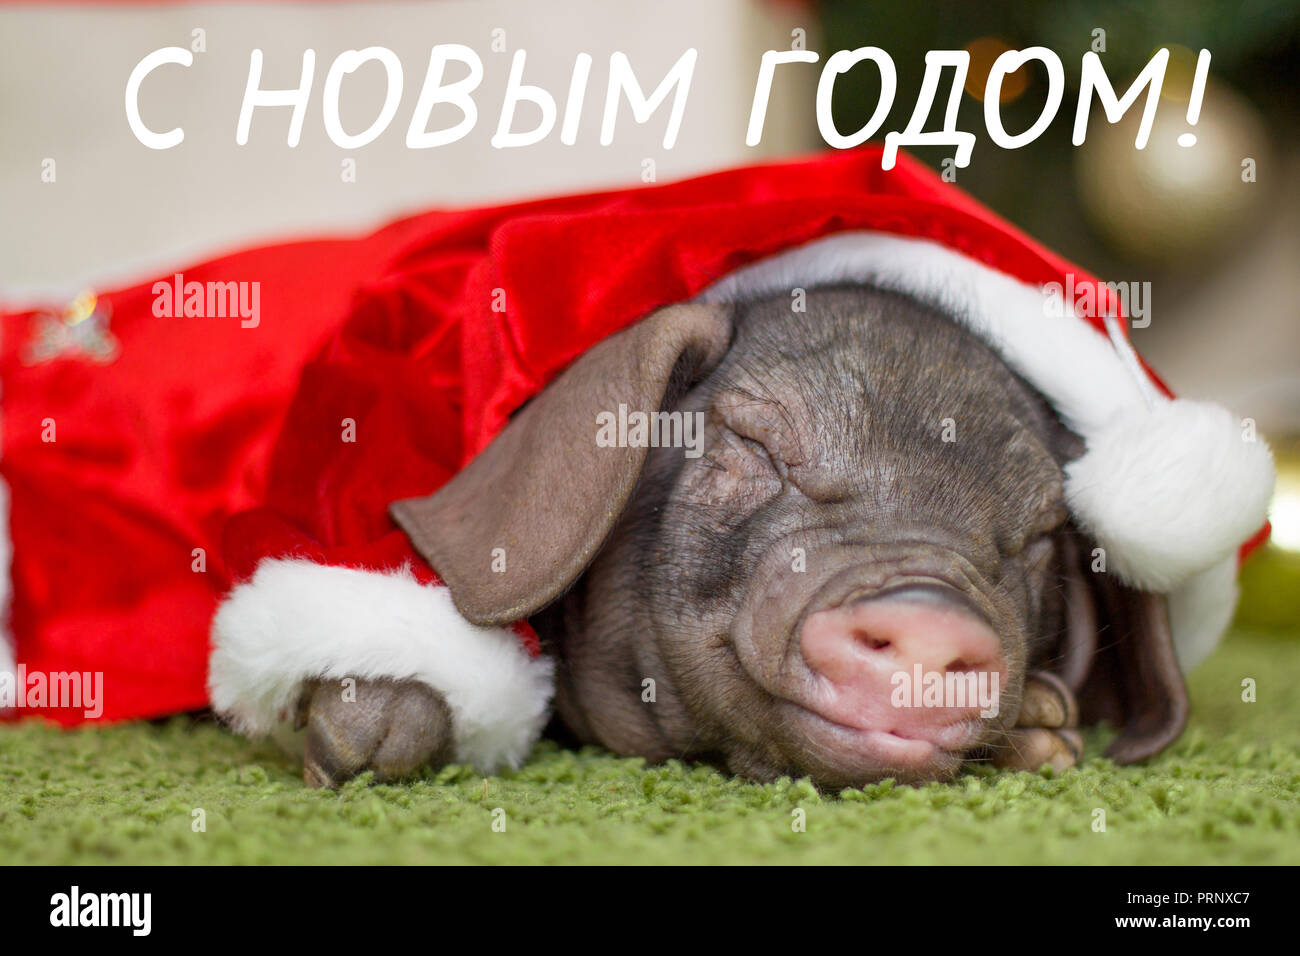 christmas and new year card with cute newborn smiling santa piglet decorations symbol of the year chinese calendar fir on background russian words